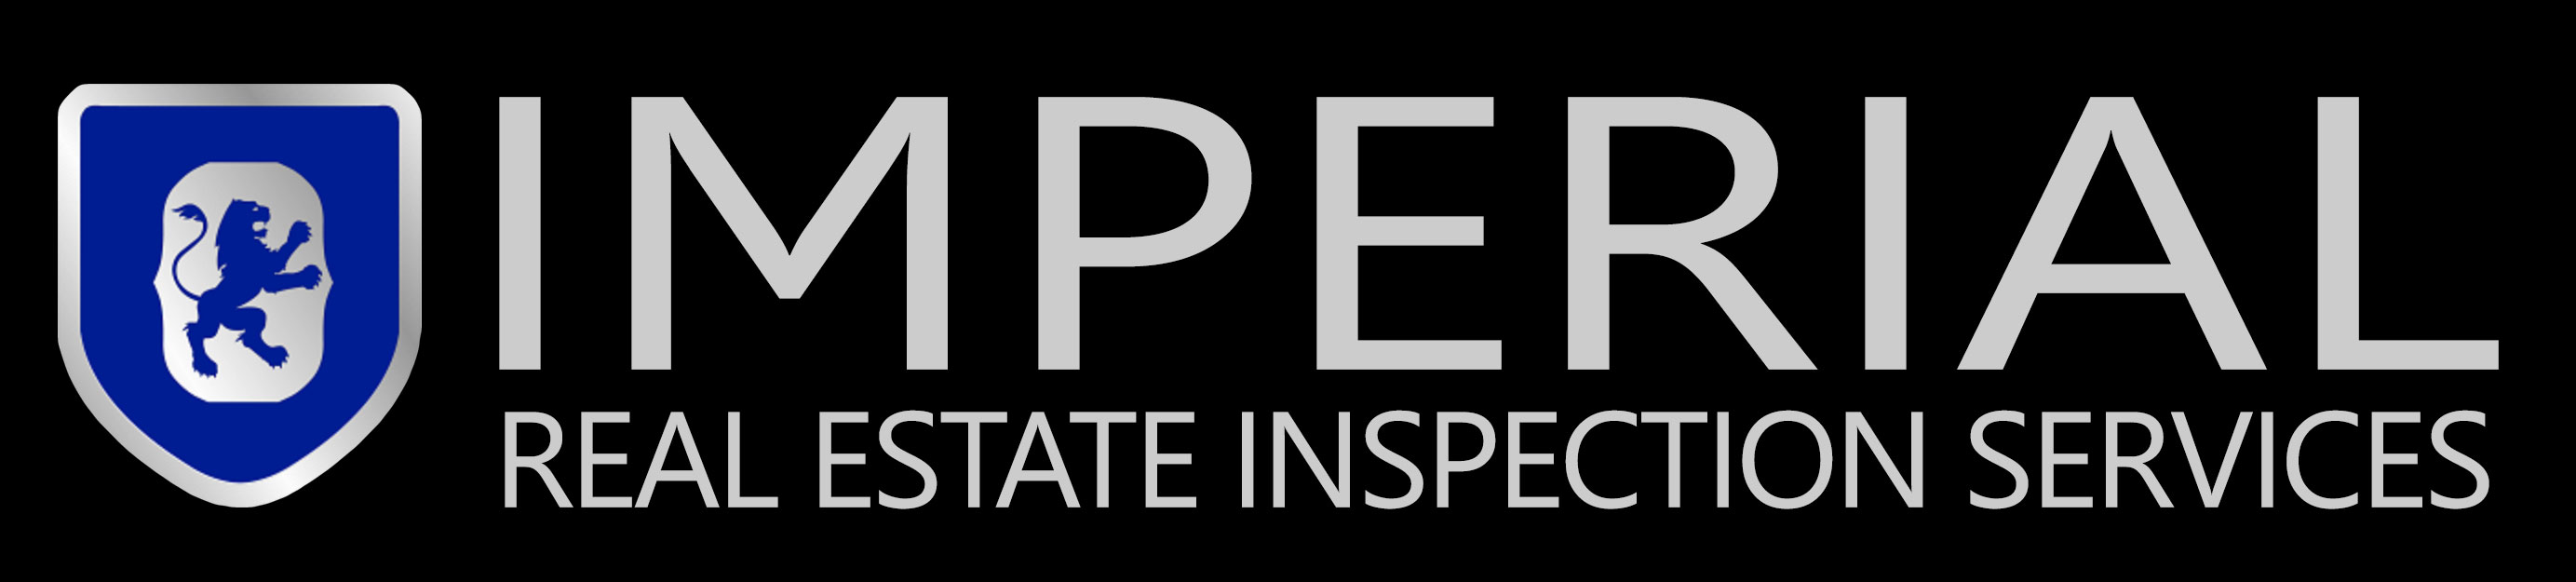 Real Estate Inspection Services